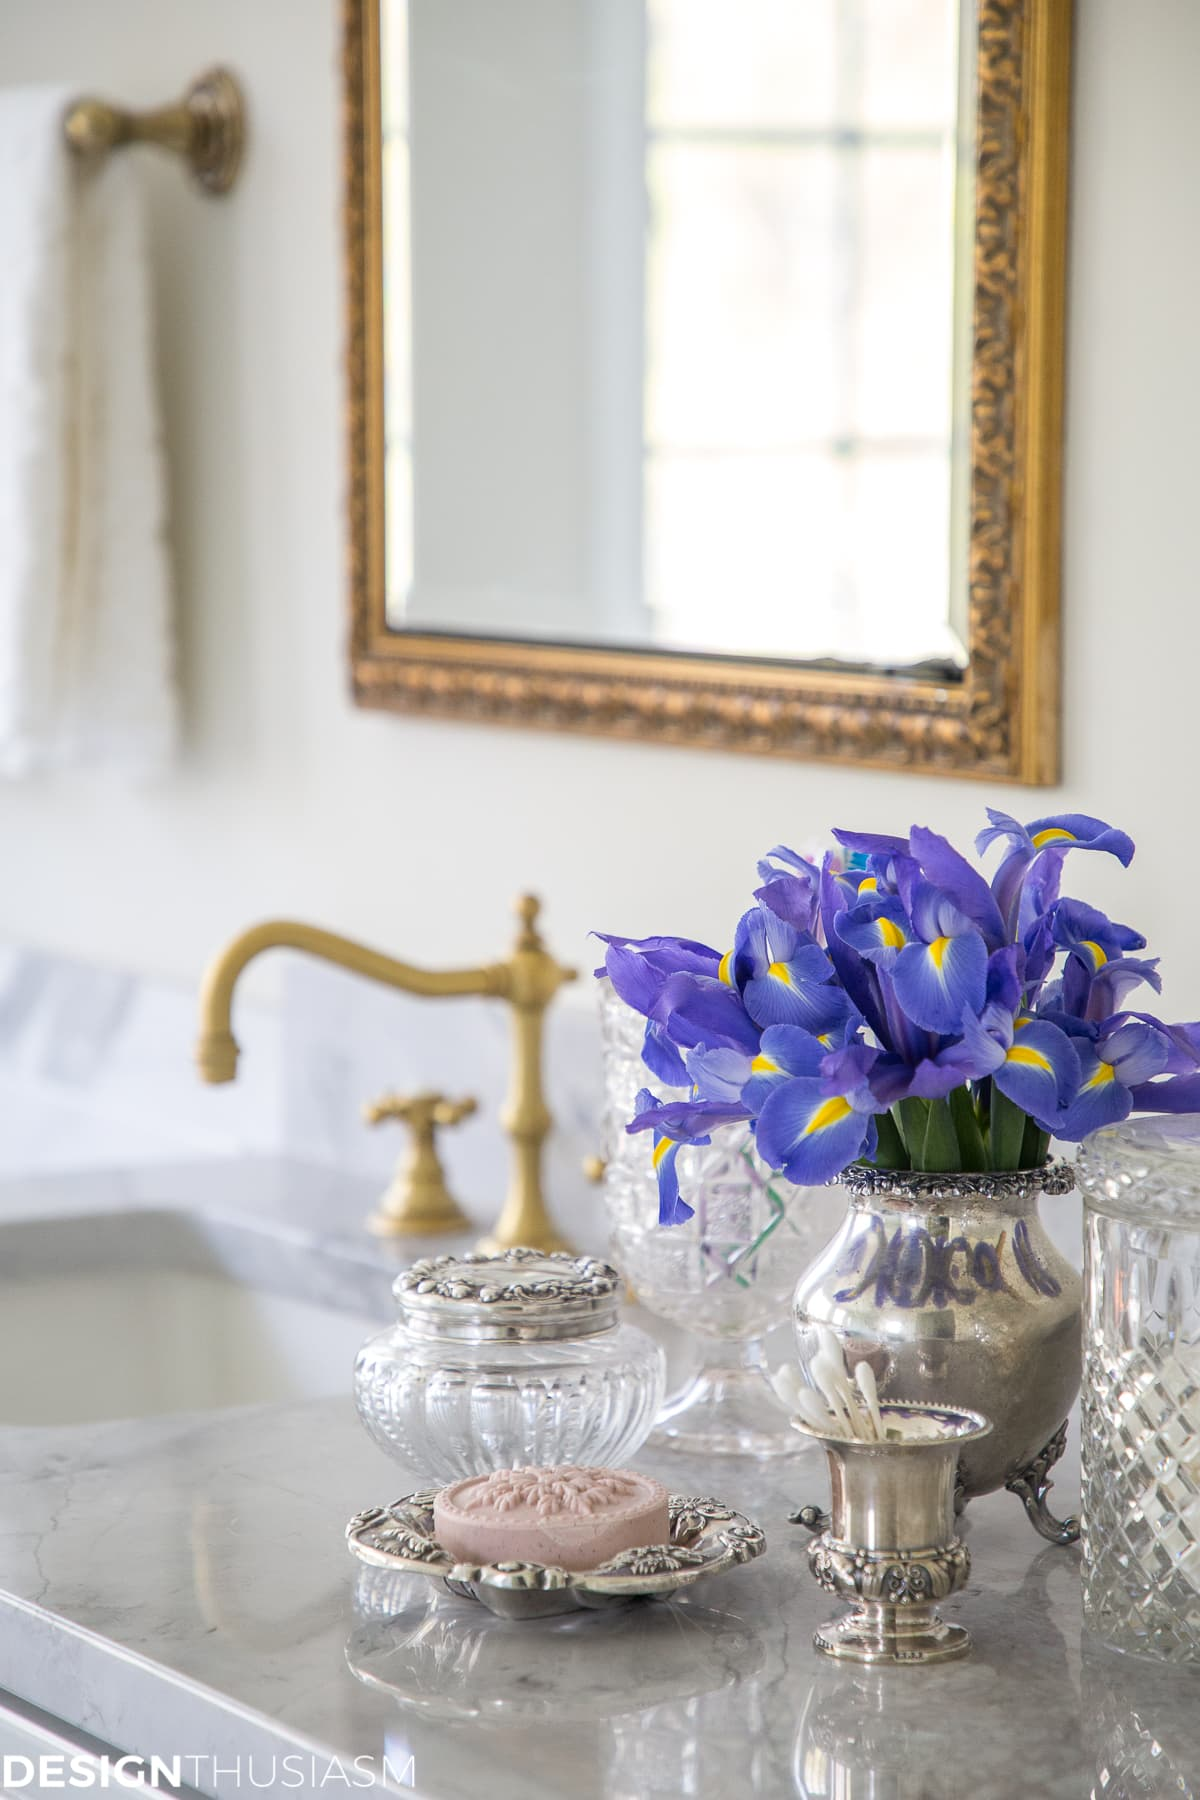 summer refresh bathroom decor with vintage vanity pieces